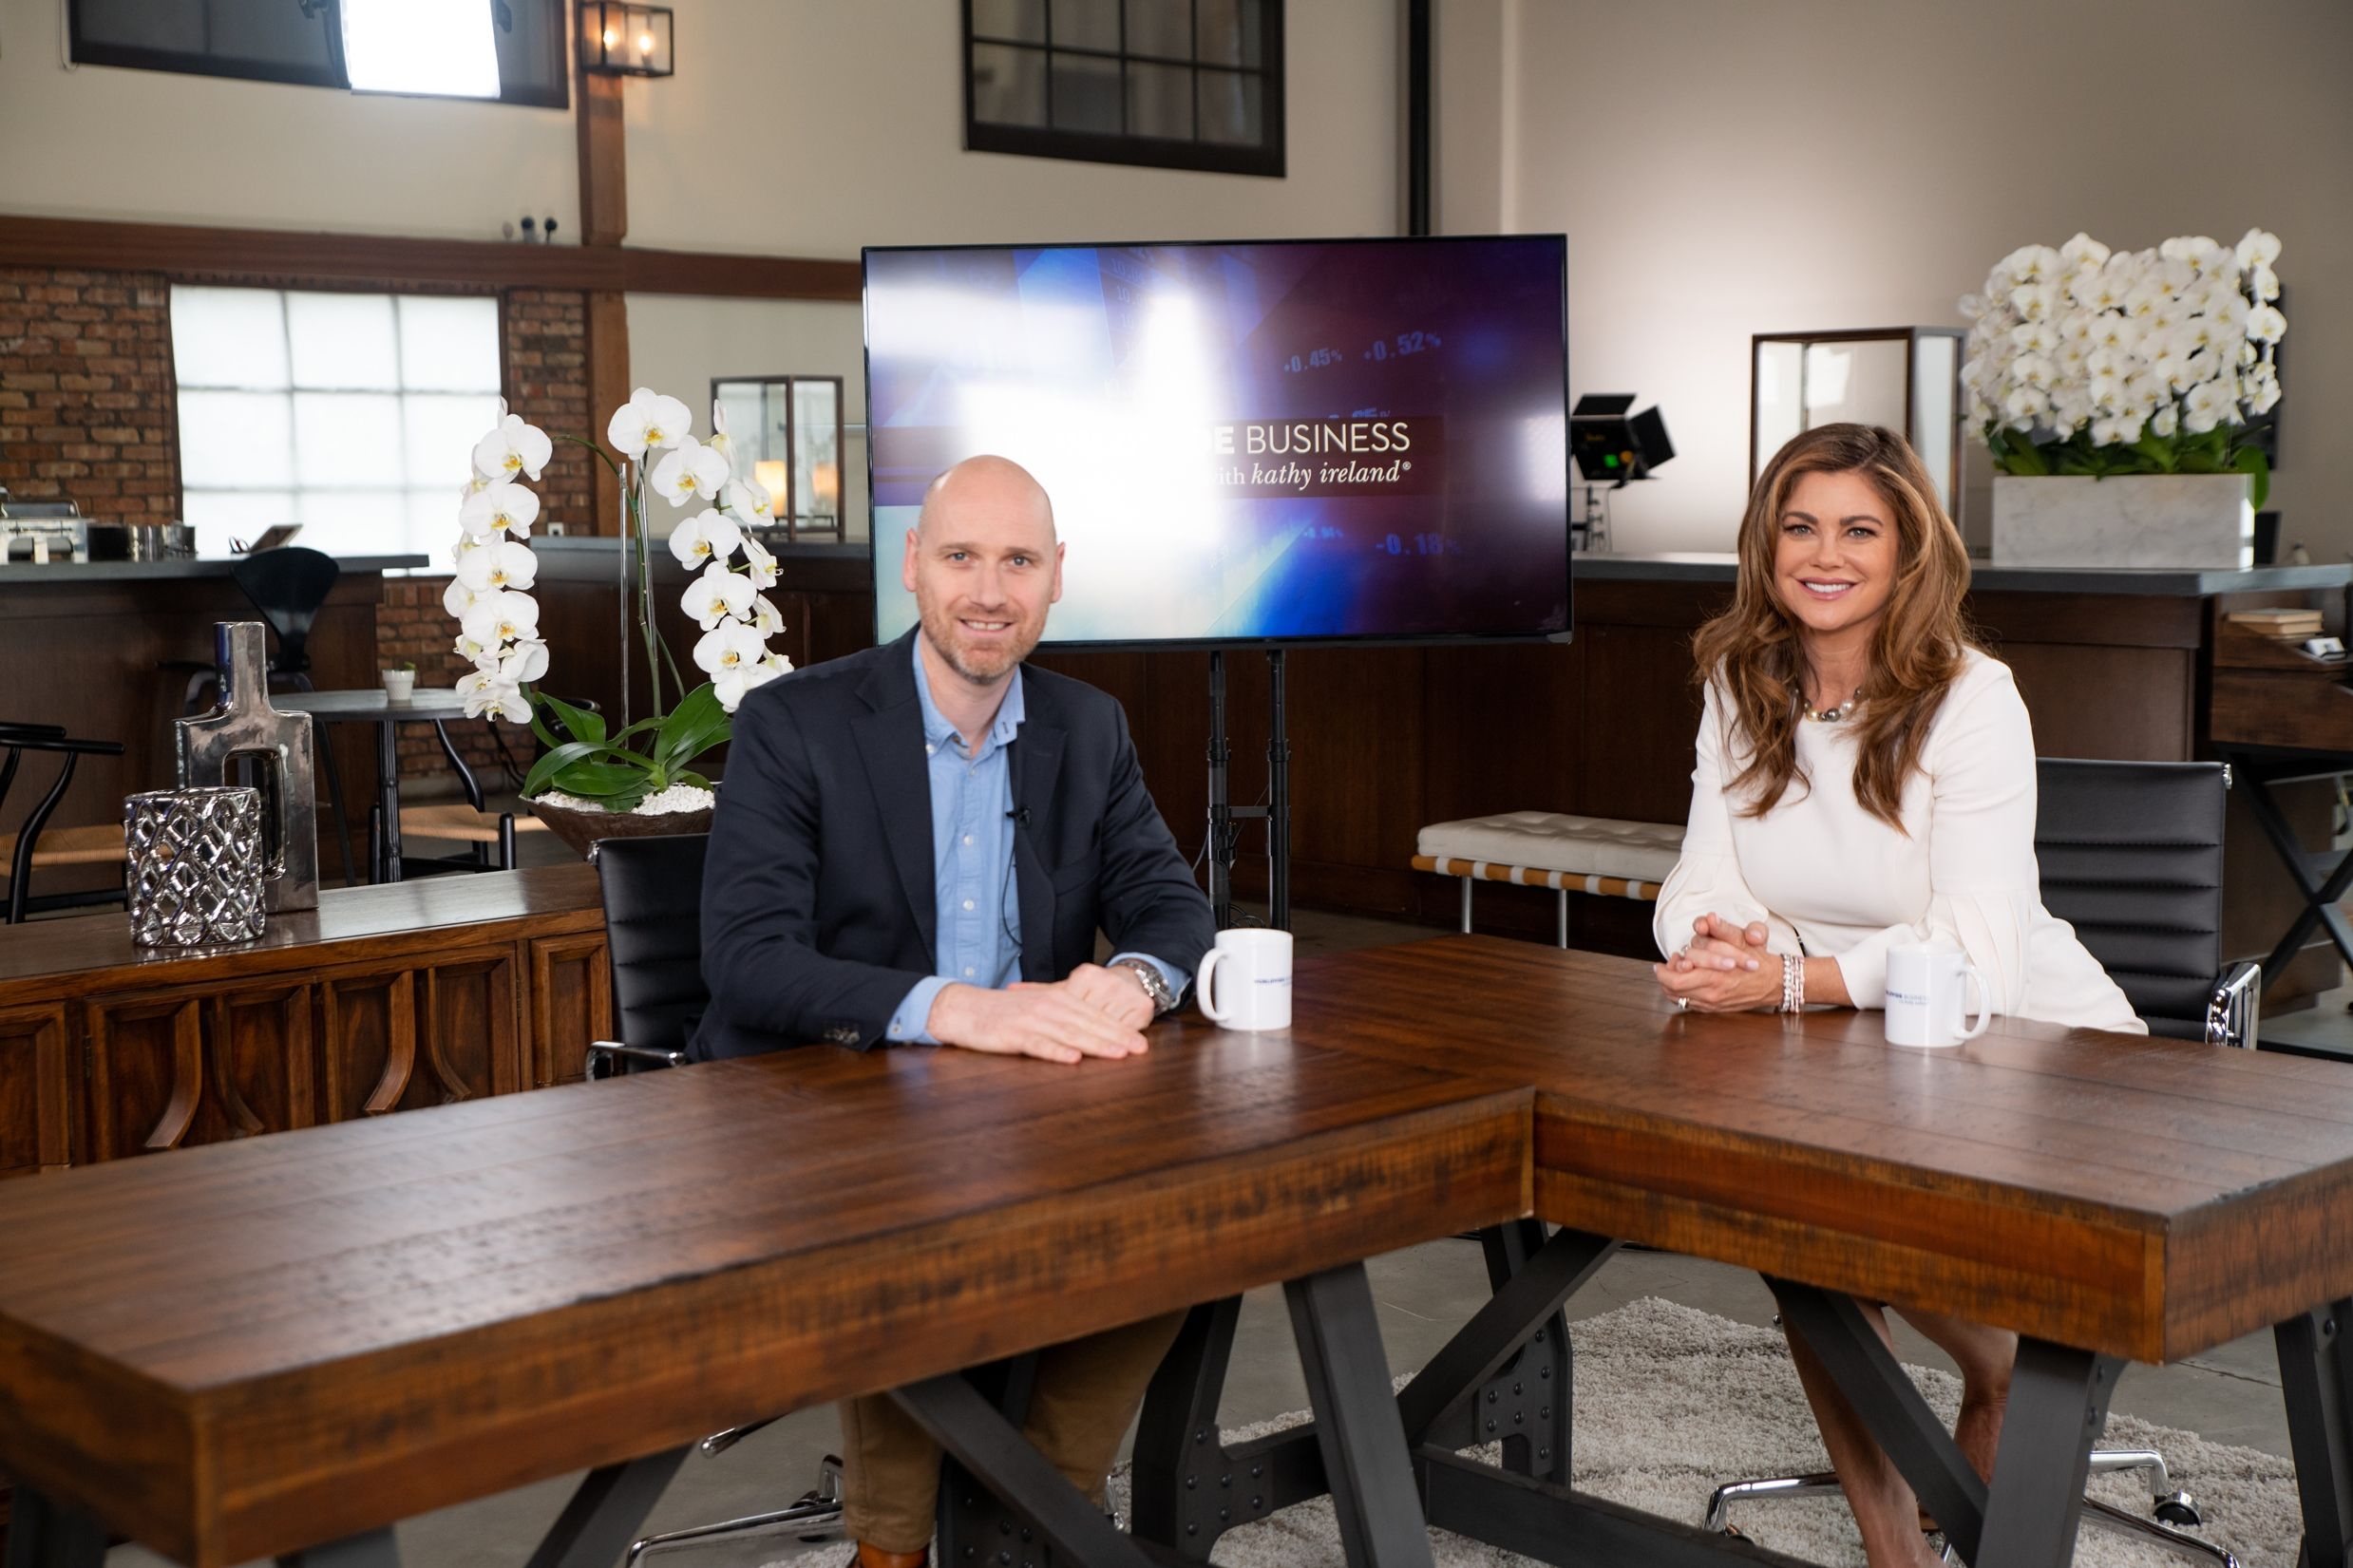 Worldwide Business With Kathy Ireland Discusses Sustainable Bio Based Plastic Solutions With Braskem Kathy Ireland Bright Minds Kathy